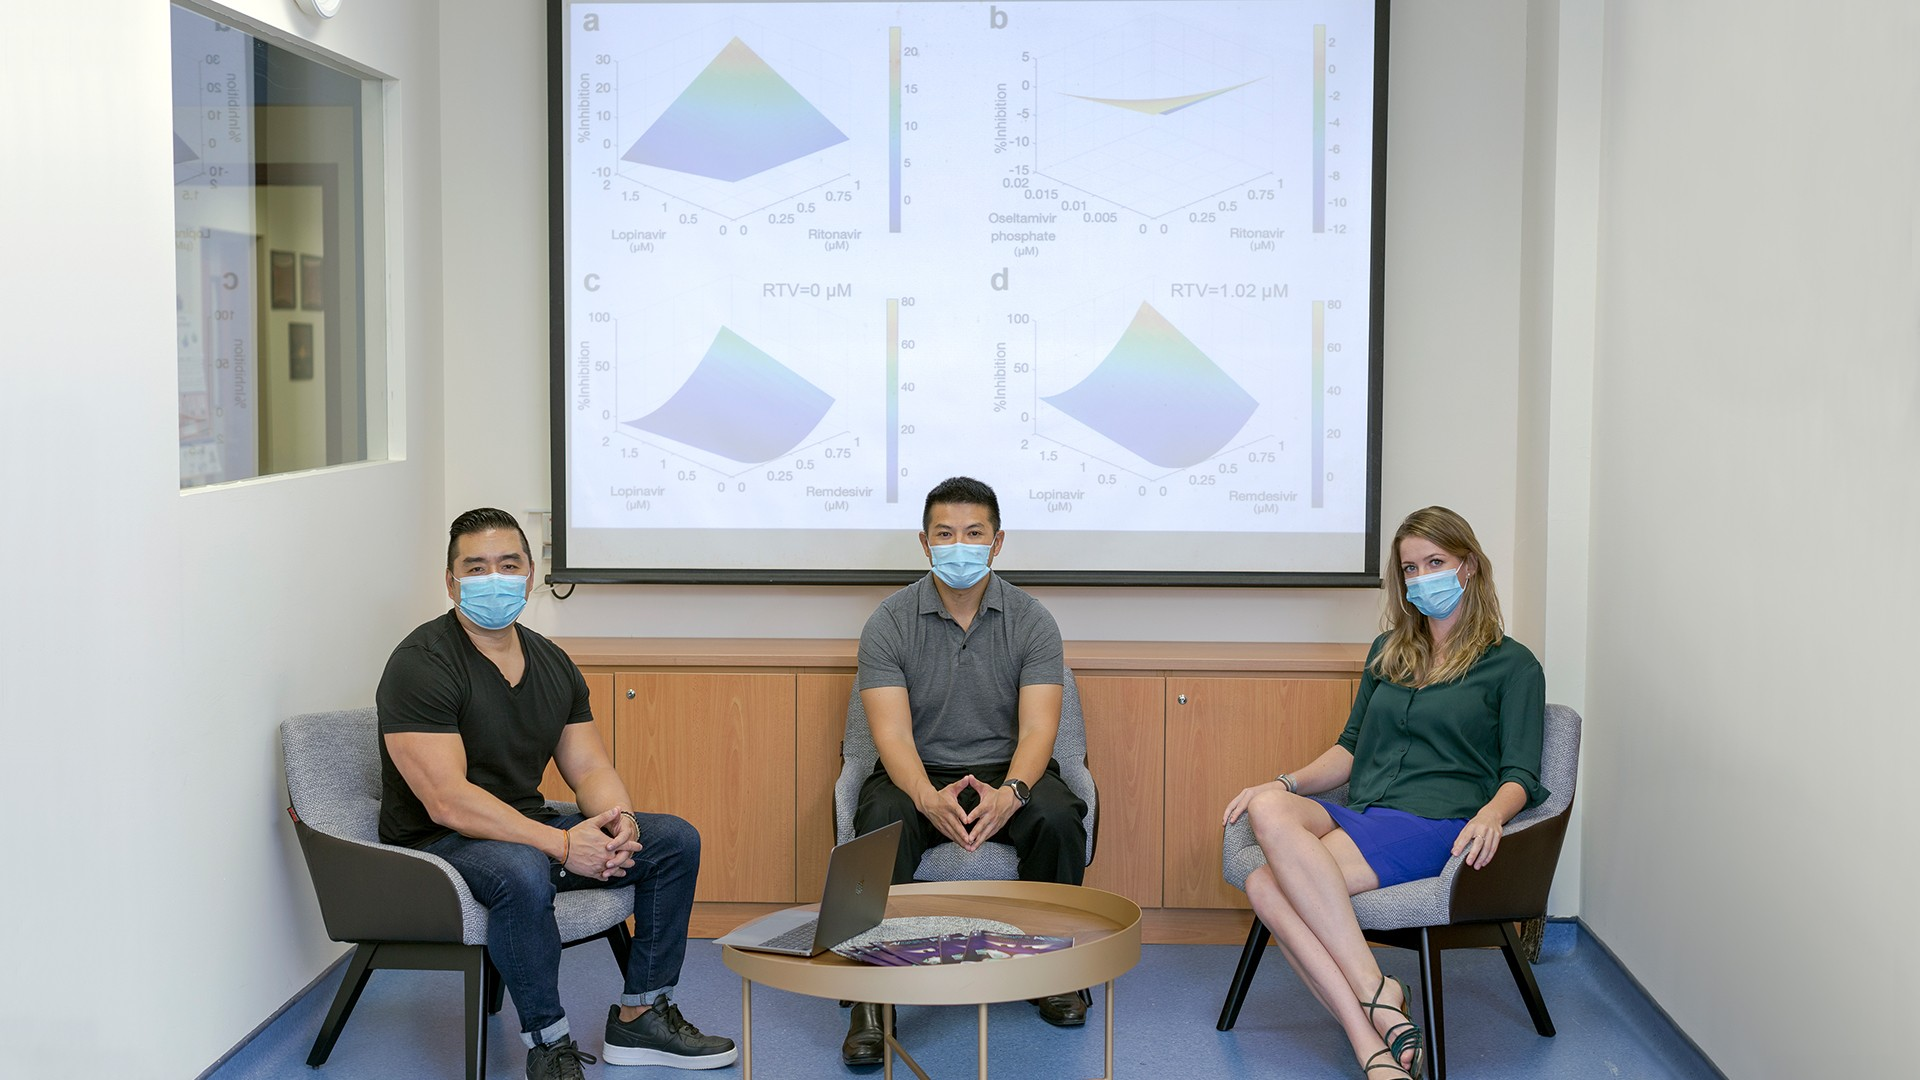 Professor Dean Ho, Associate Professor Edward Chow, and Dr Agata Blasiak worked with their collaborators to derive an optimal combination of available therapies against SARS-CoV-2 using the IDentif.AI platform. Photo courtesy: NUS